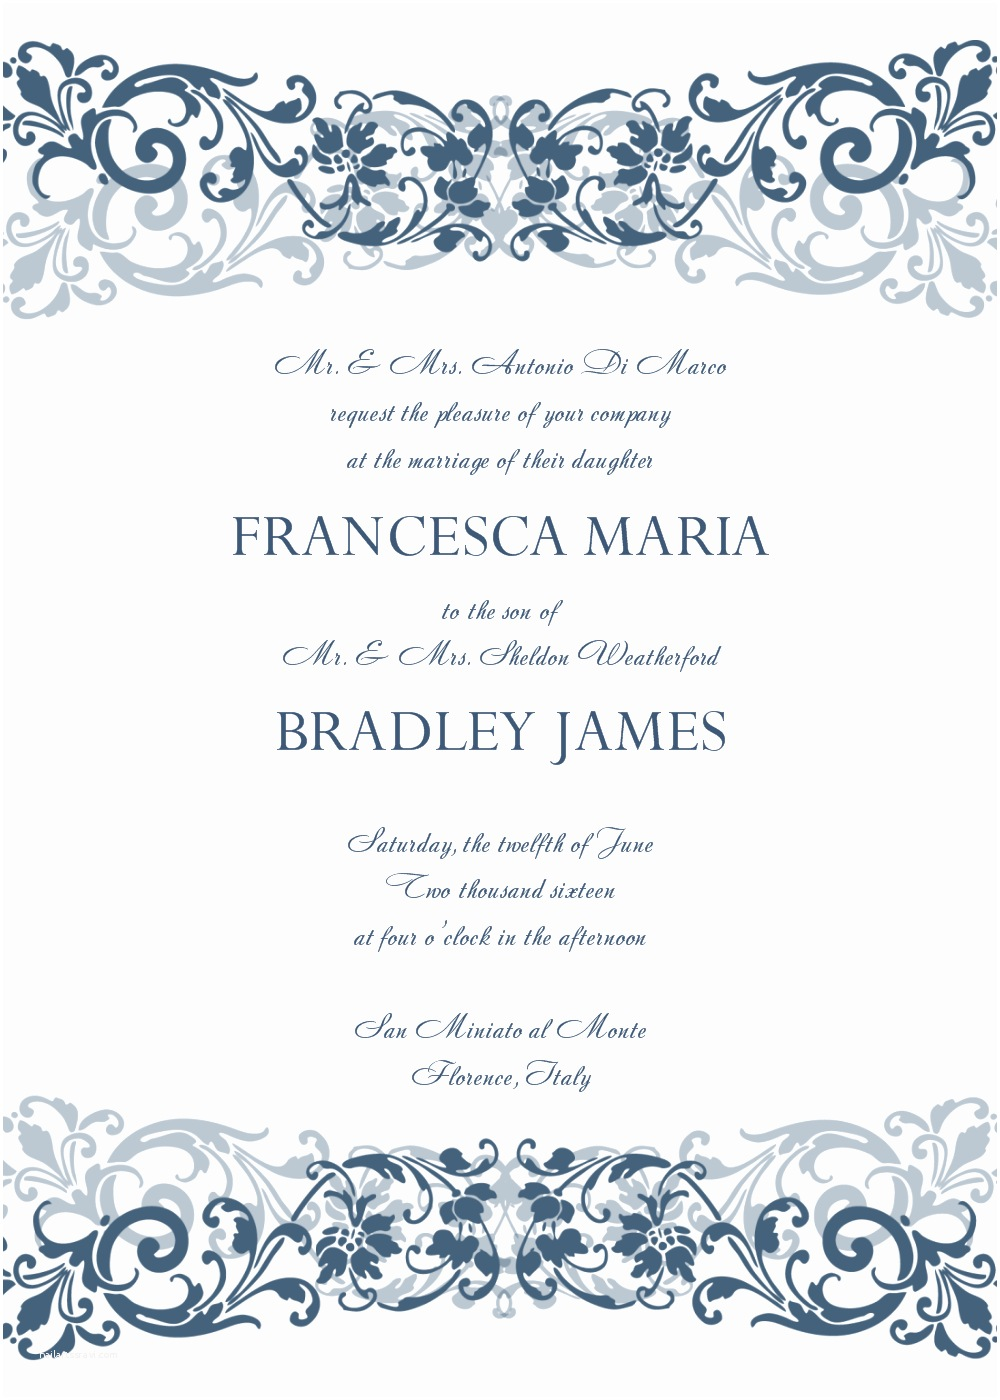 wedding invitation templates simple